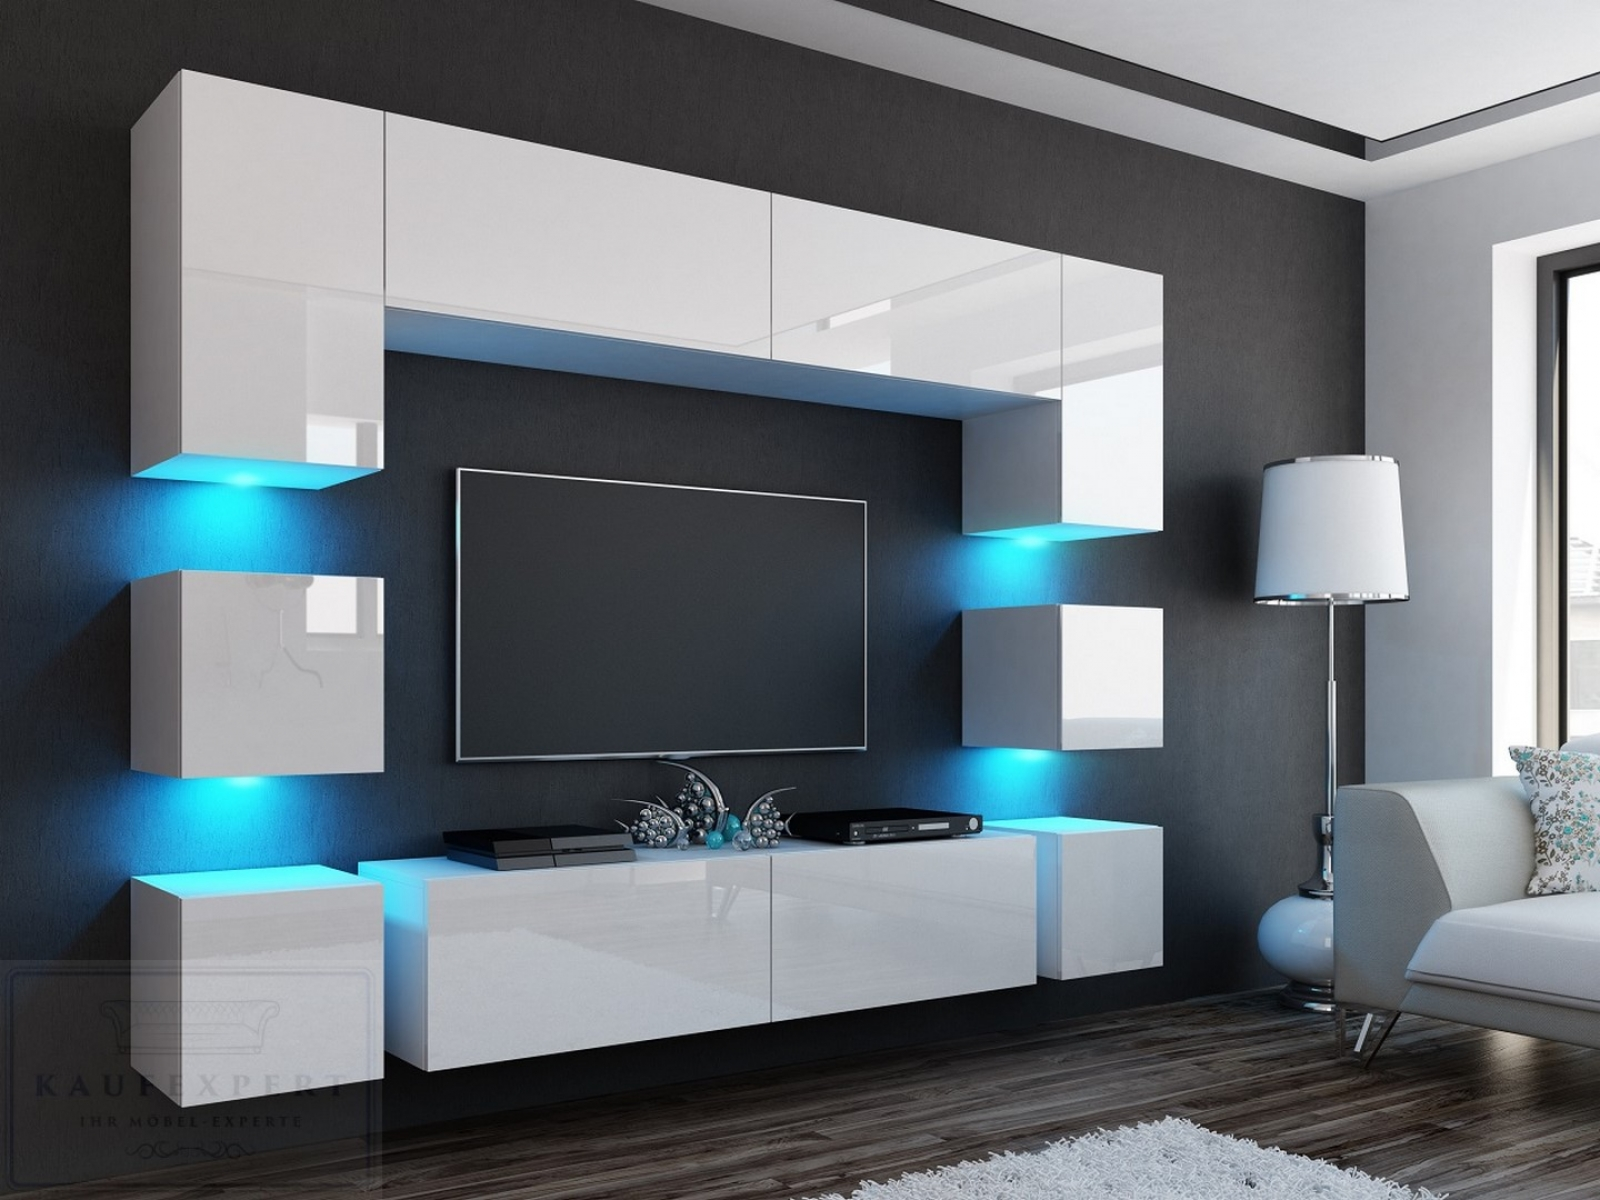 kaufexpert wohnwand quadro wei hochglanz 228 cm mediawand medienwand design modern led. Black Bedroom Furniture Sets. Home Design Ideas